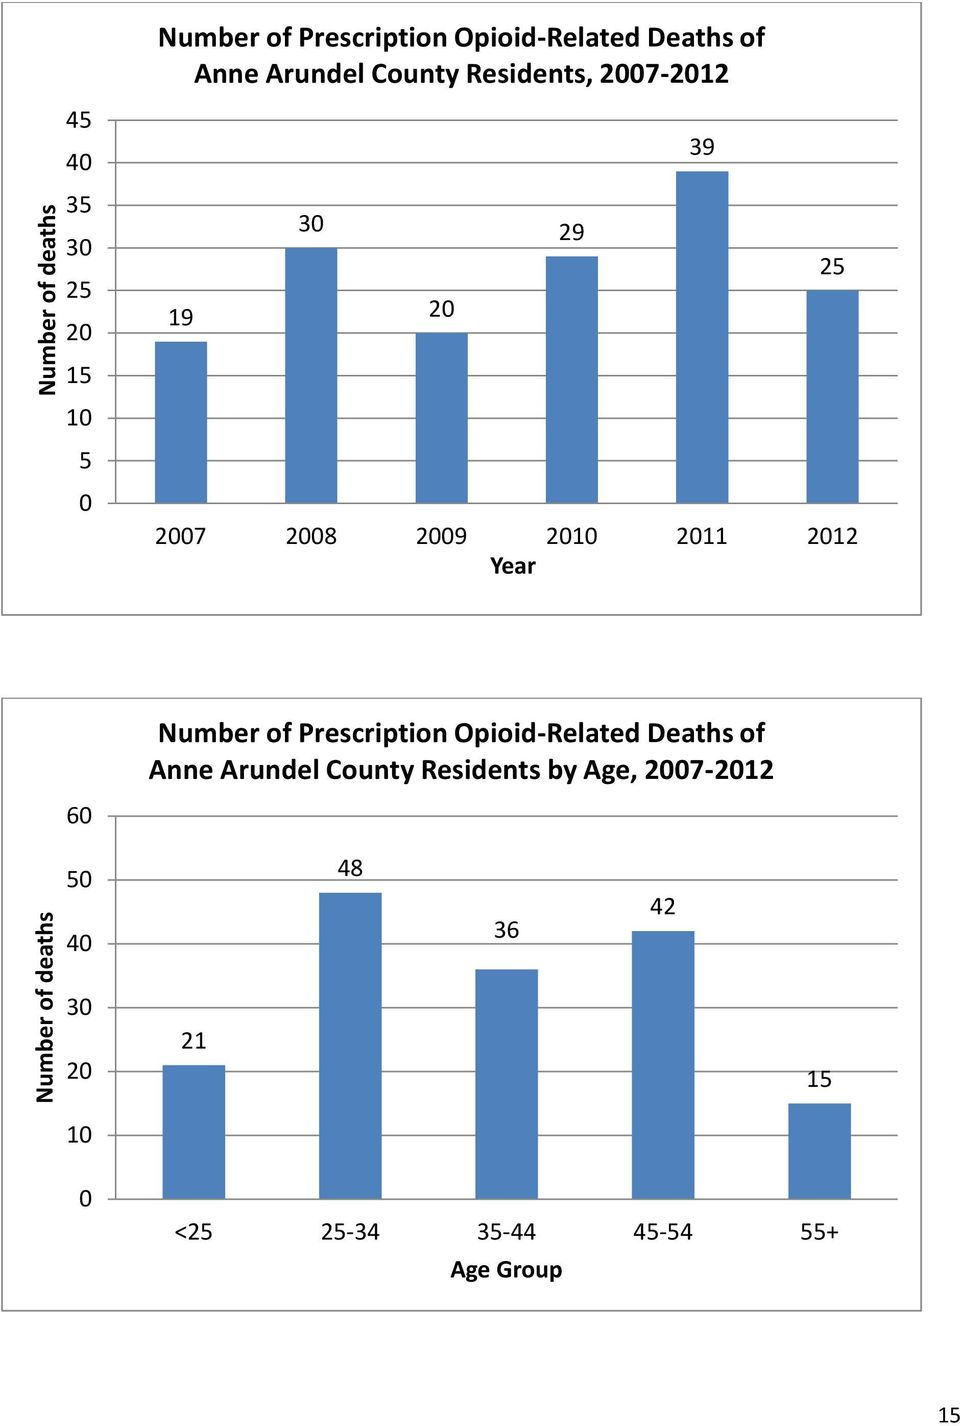 Number of Prescription Opioid-Related Deaths of Anne Arundel County